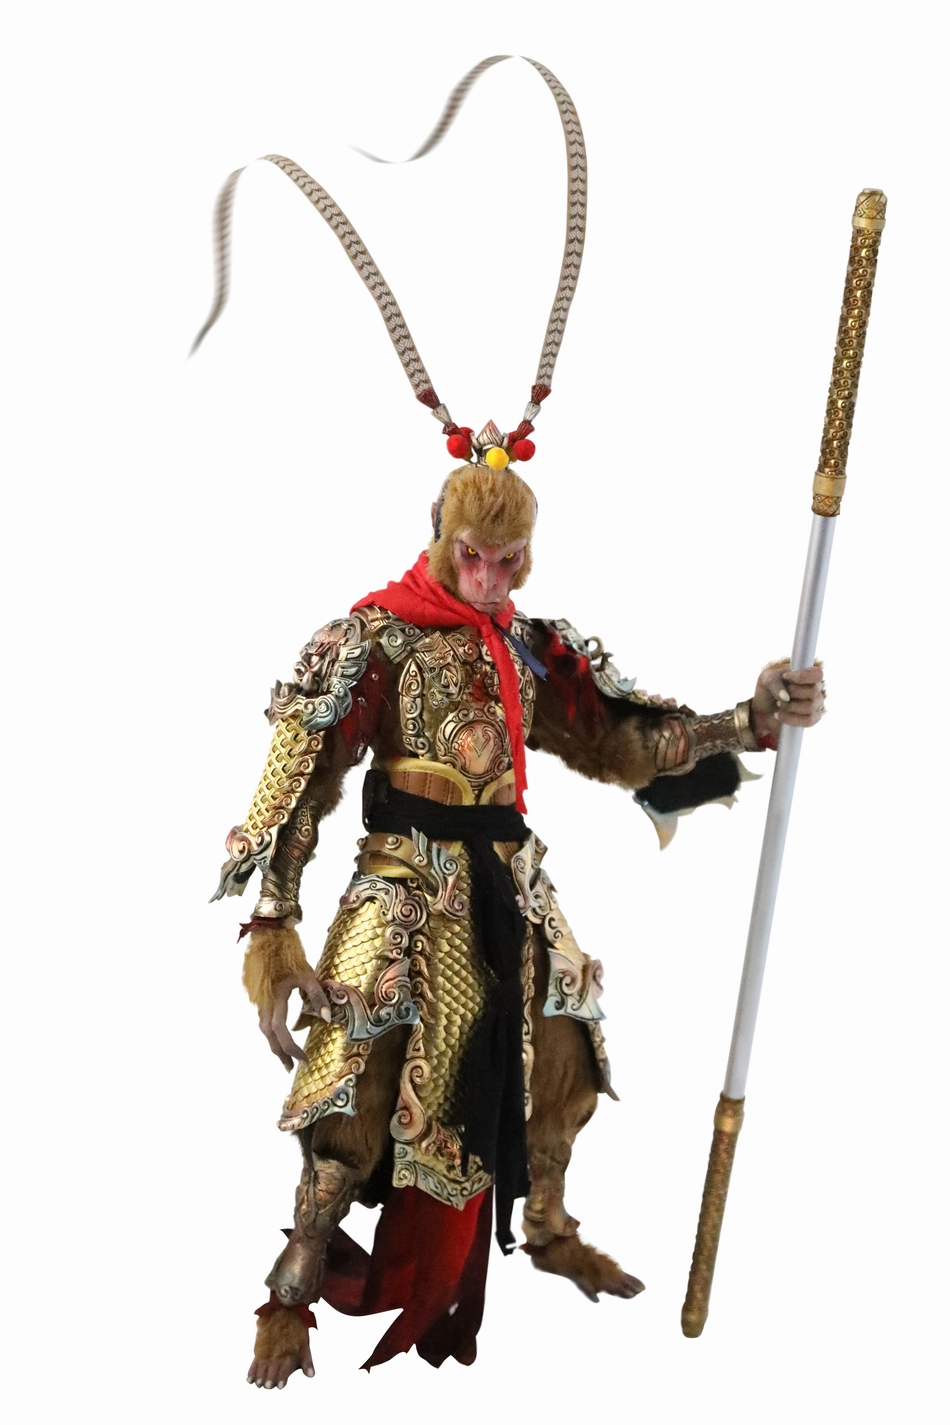 Mythology - NEW PRODUCT: 303TOYS x Evening phase: 1/6 National Wind Legend Series - Sun Wukong Monkey King Apocalypse & Dasheng Qitian & Stepping 18091110